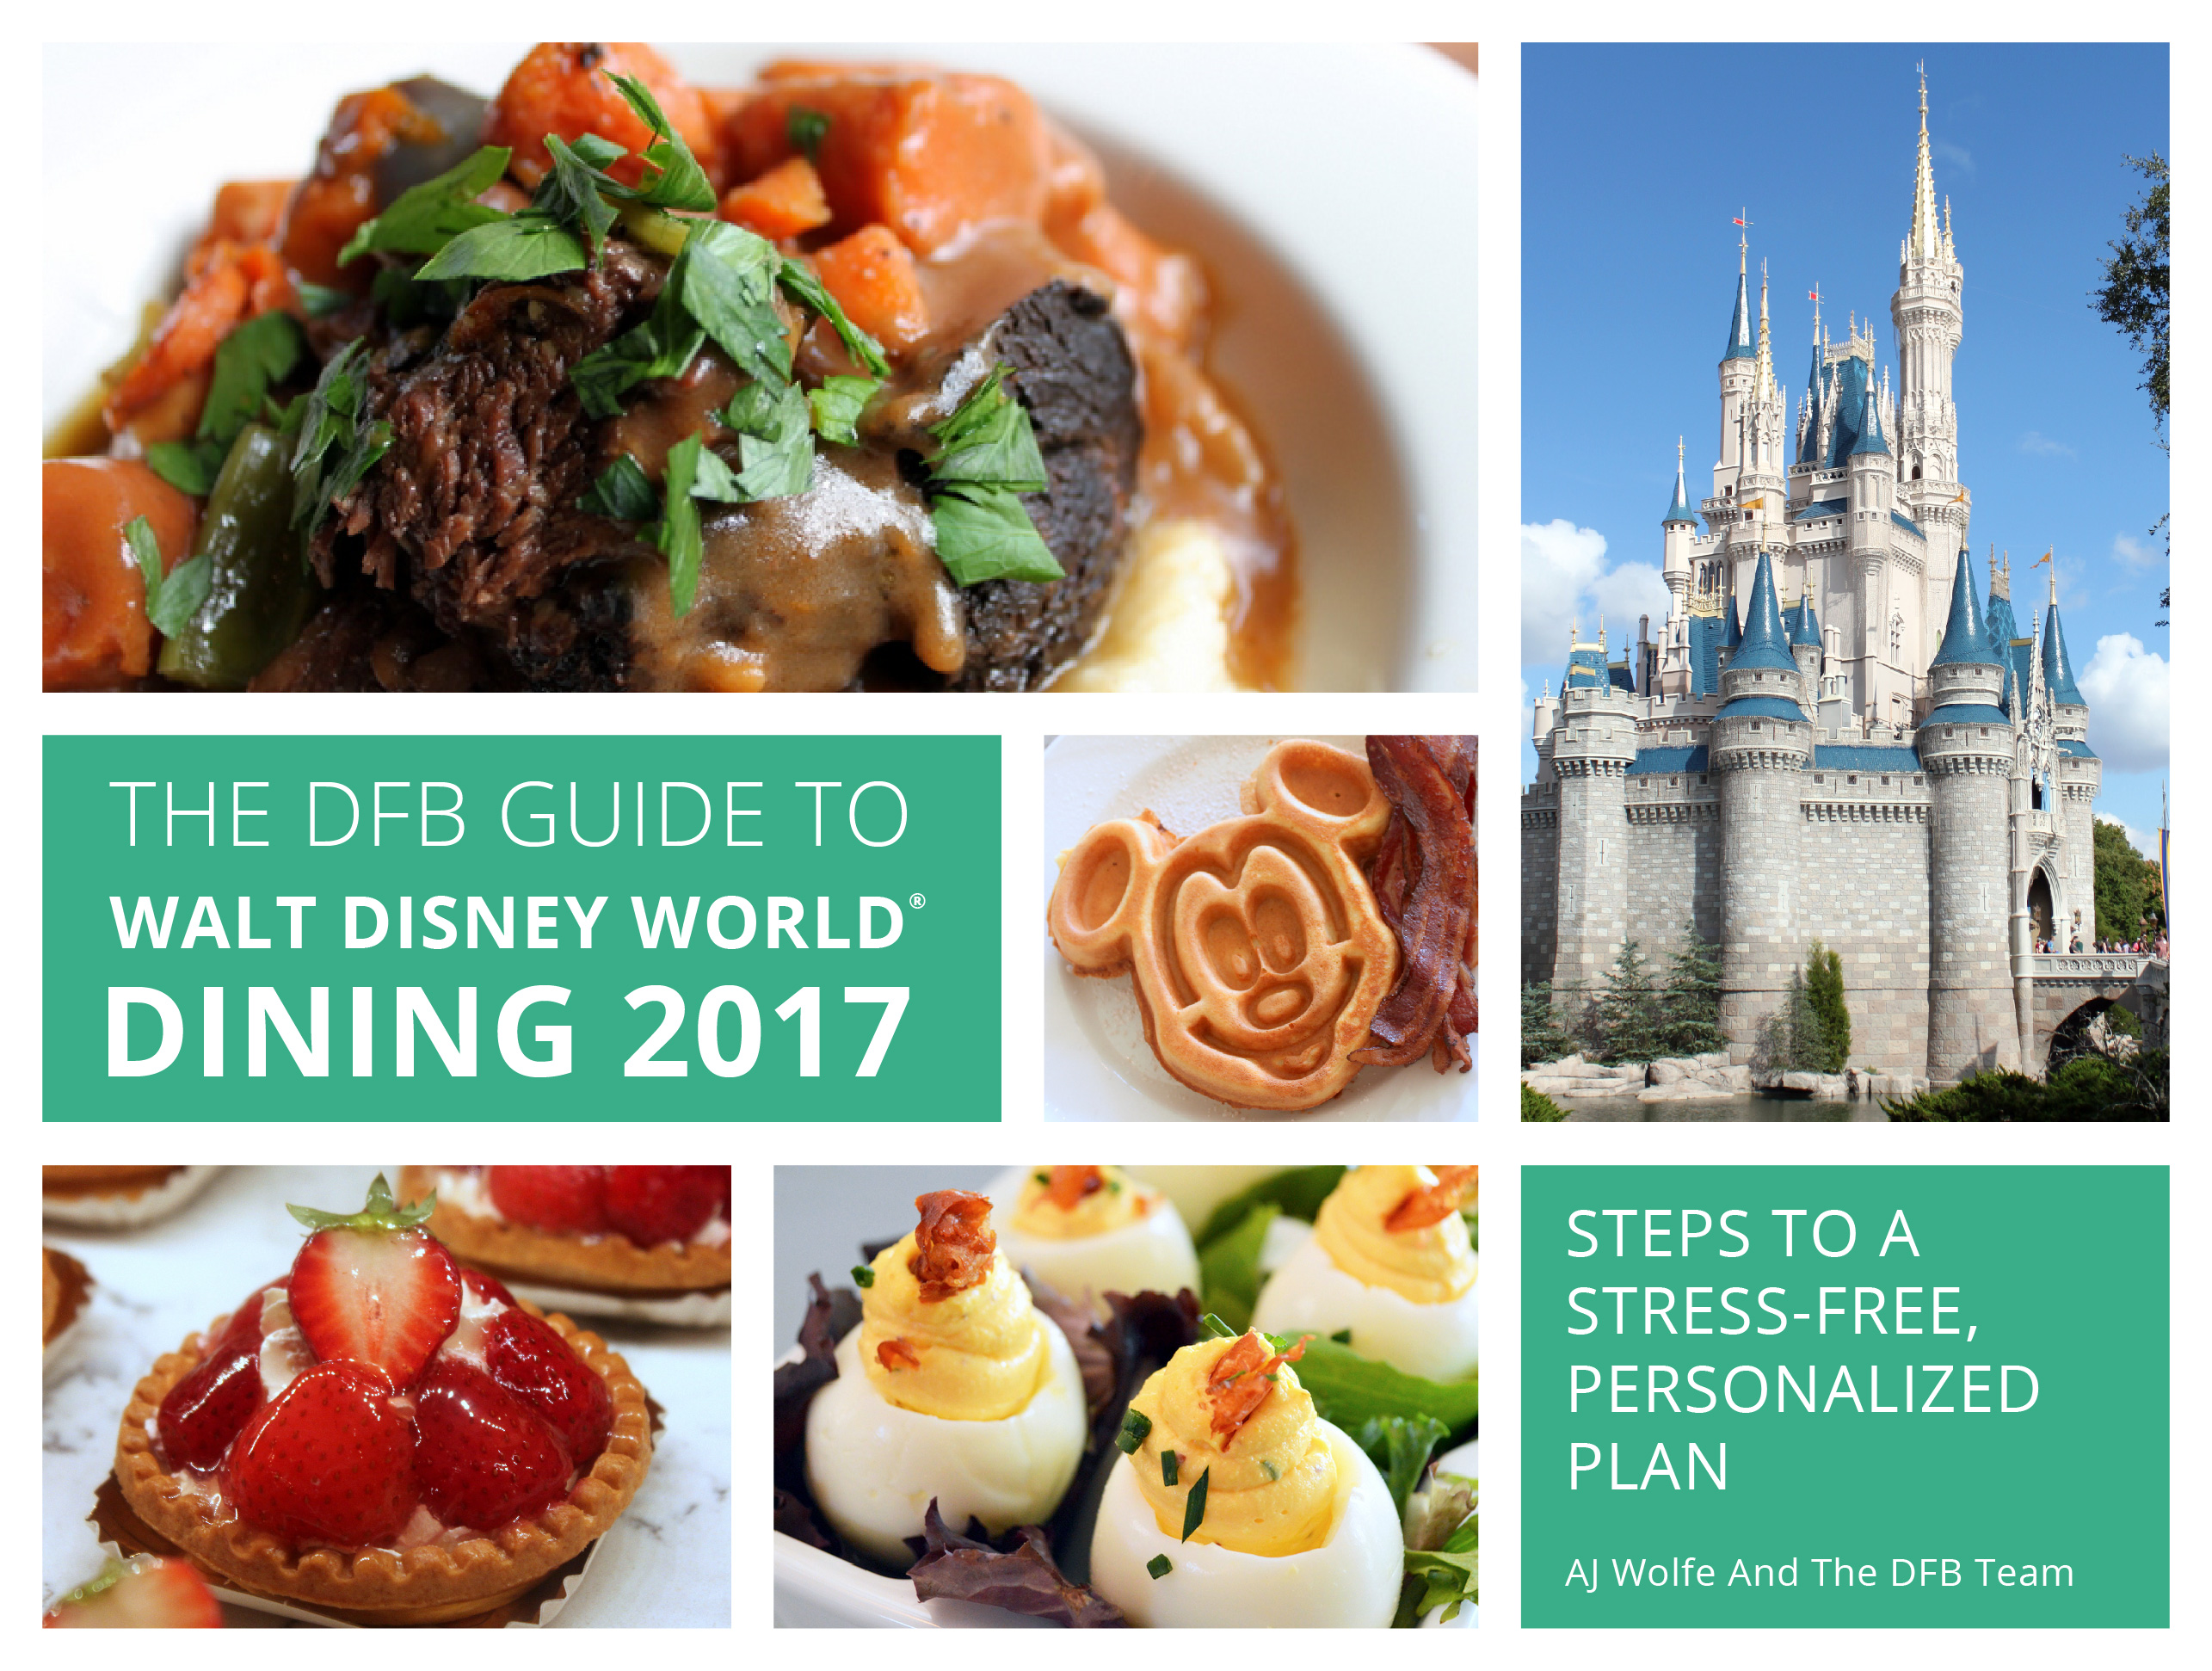 2017-dfb-guide-cover-mockups-11